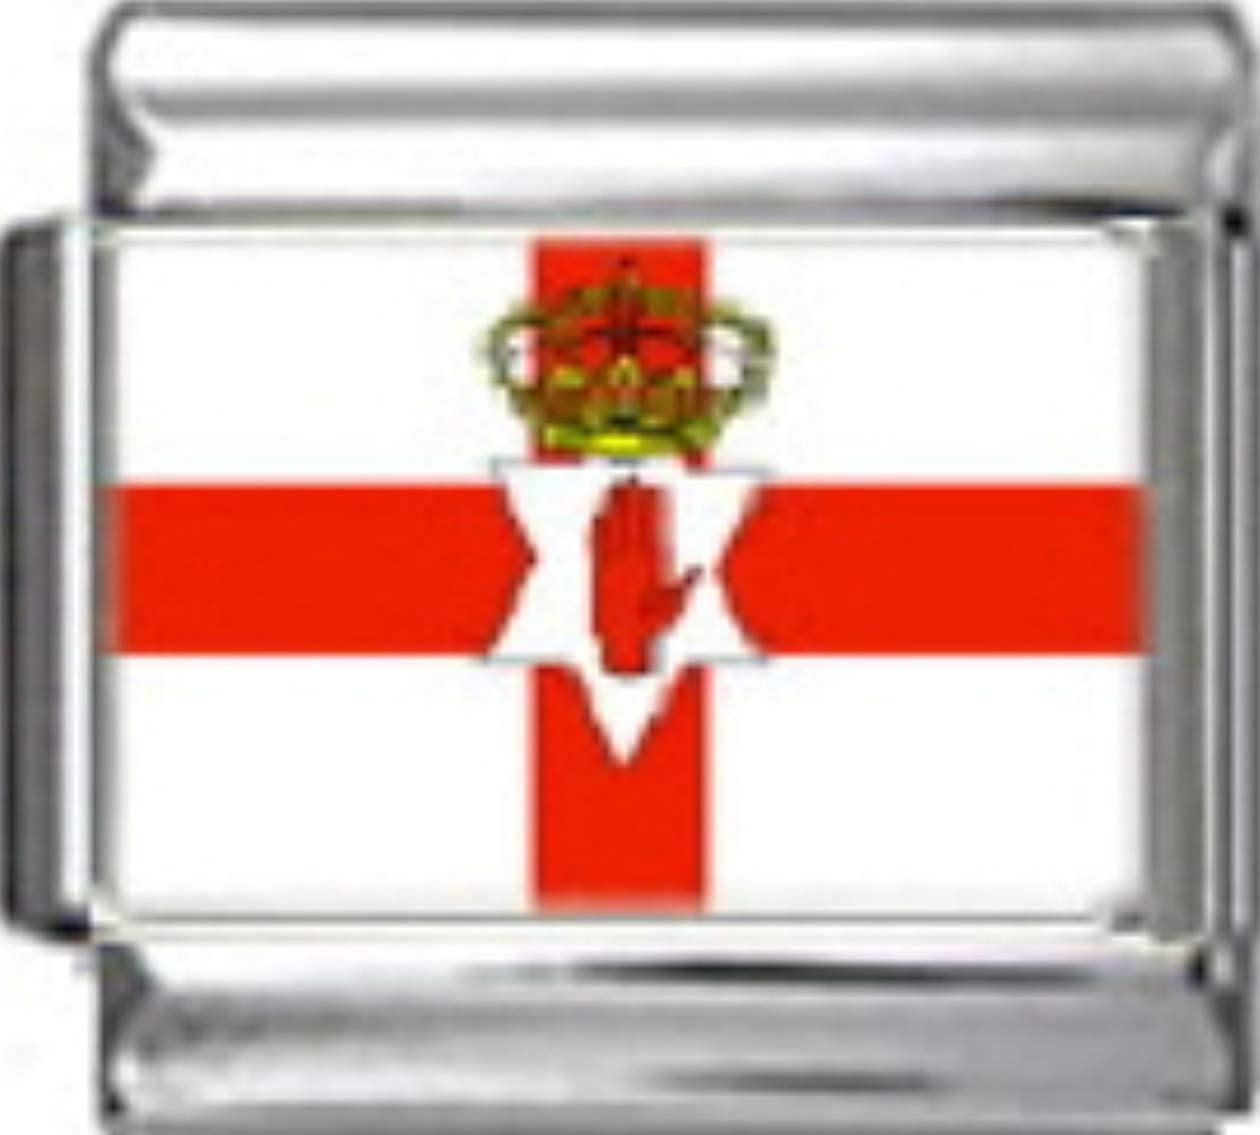 Stylysh Charms NORTHERN IRELAND FLAG Photo Italian 9mm Link PC132 Fits Nomination Classic